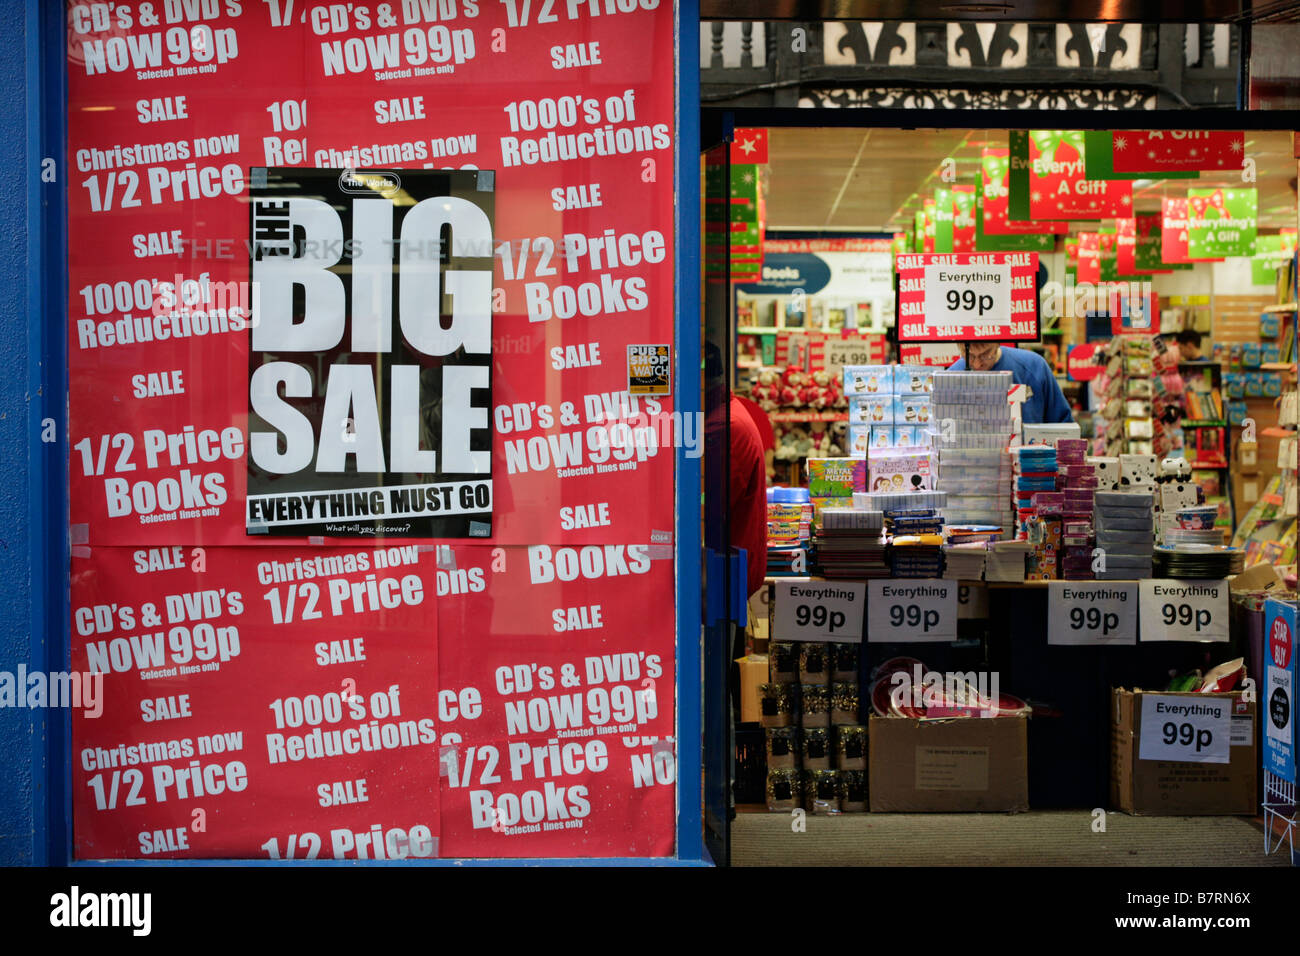 sale posters in the window of a shop in Shrewsbury - Stock Image